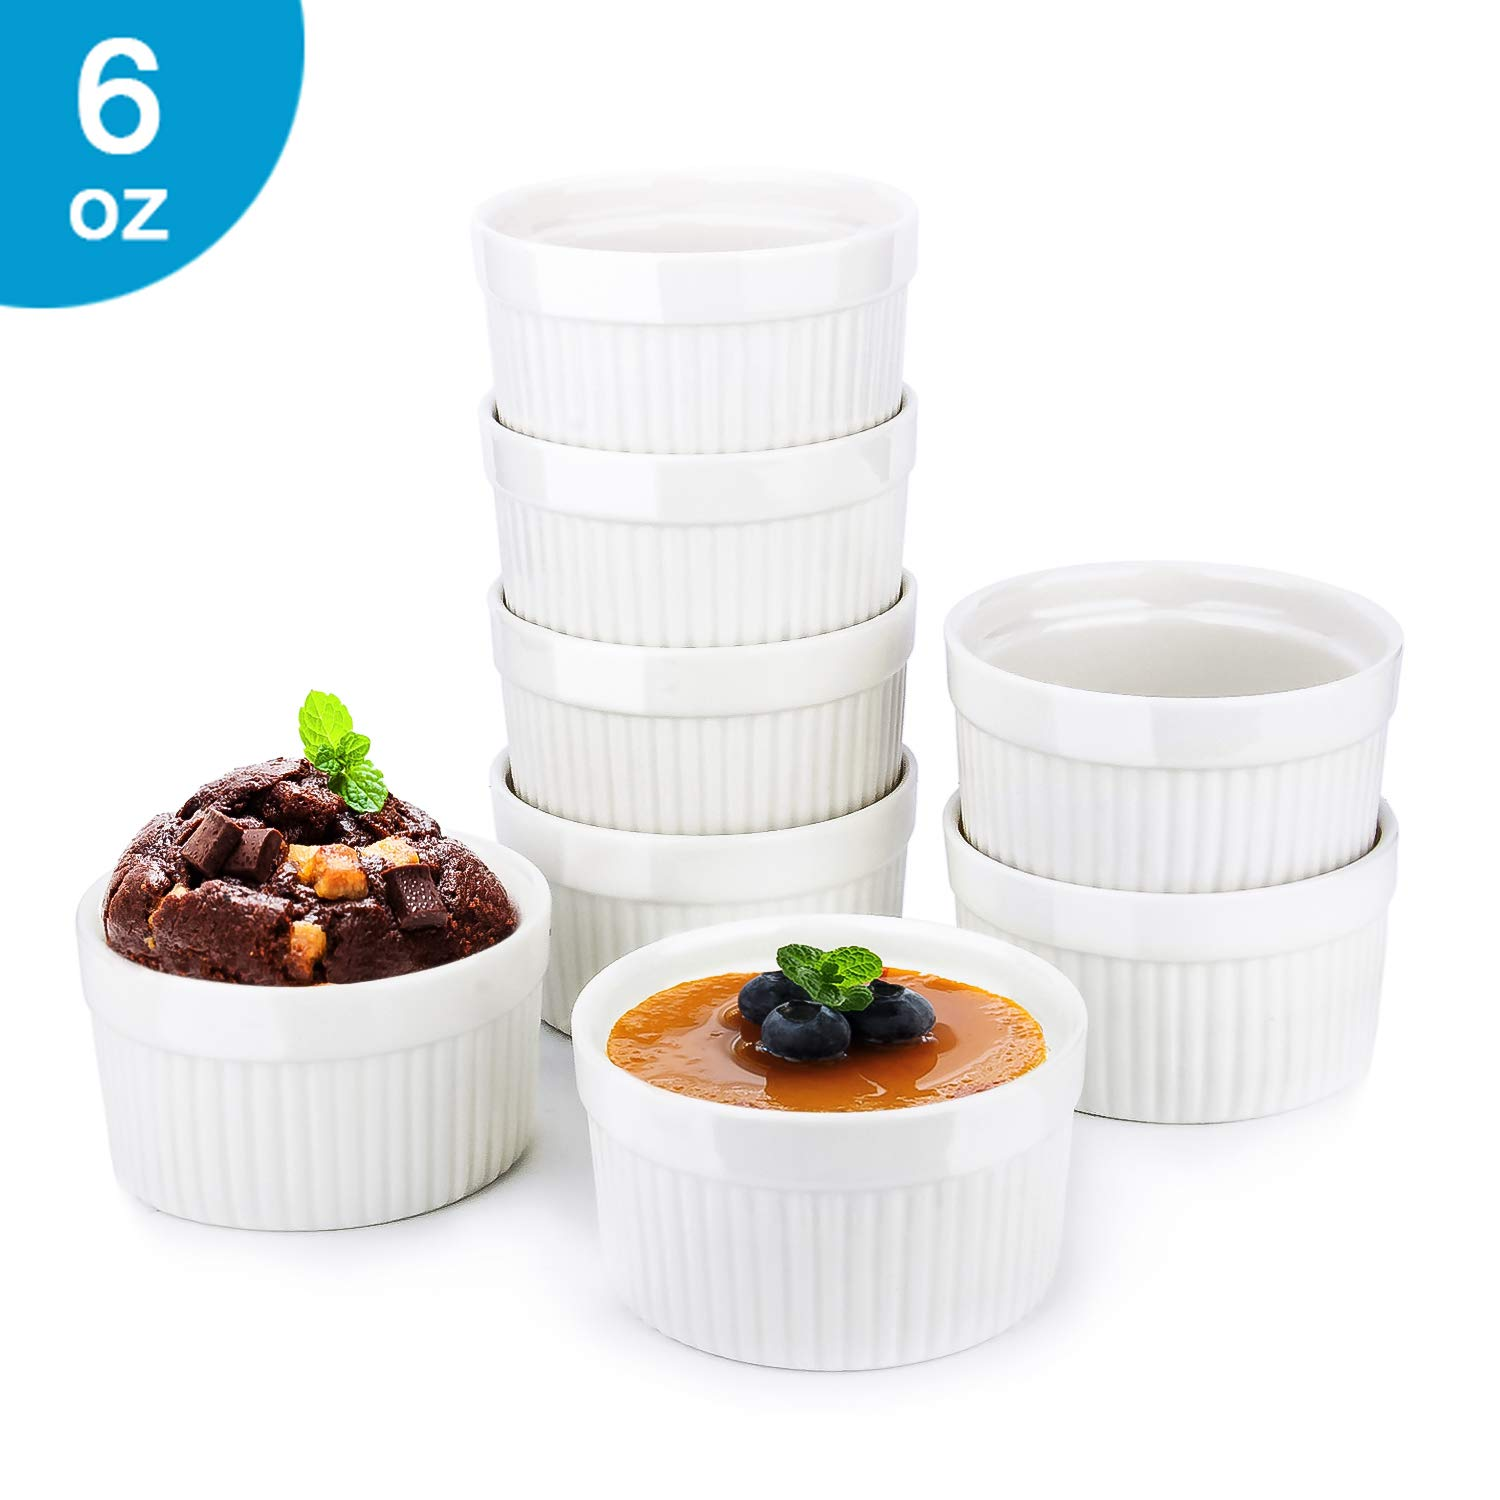 6 Oz Ramekin Bowls,8 PCS Bakeware Set for Baking and Cooking, Oven Safe Sleek Porcelain White Ramikins for Pudding, Creme Brulee, Custard Cups and Souffle Small instant table tray by WERTIOO